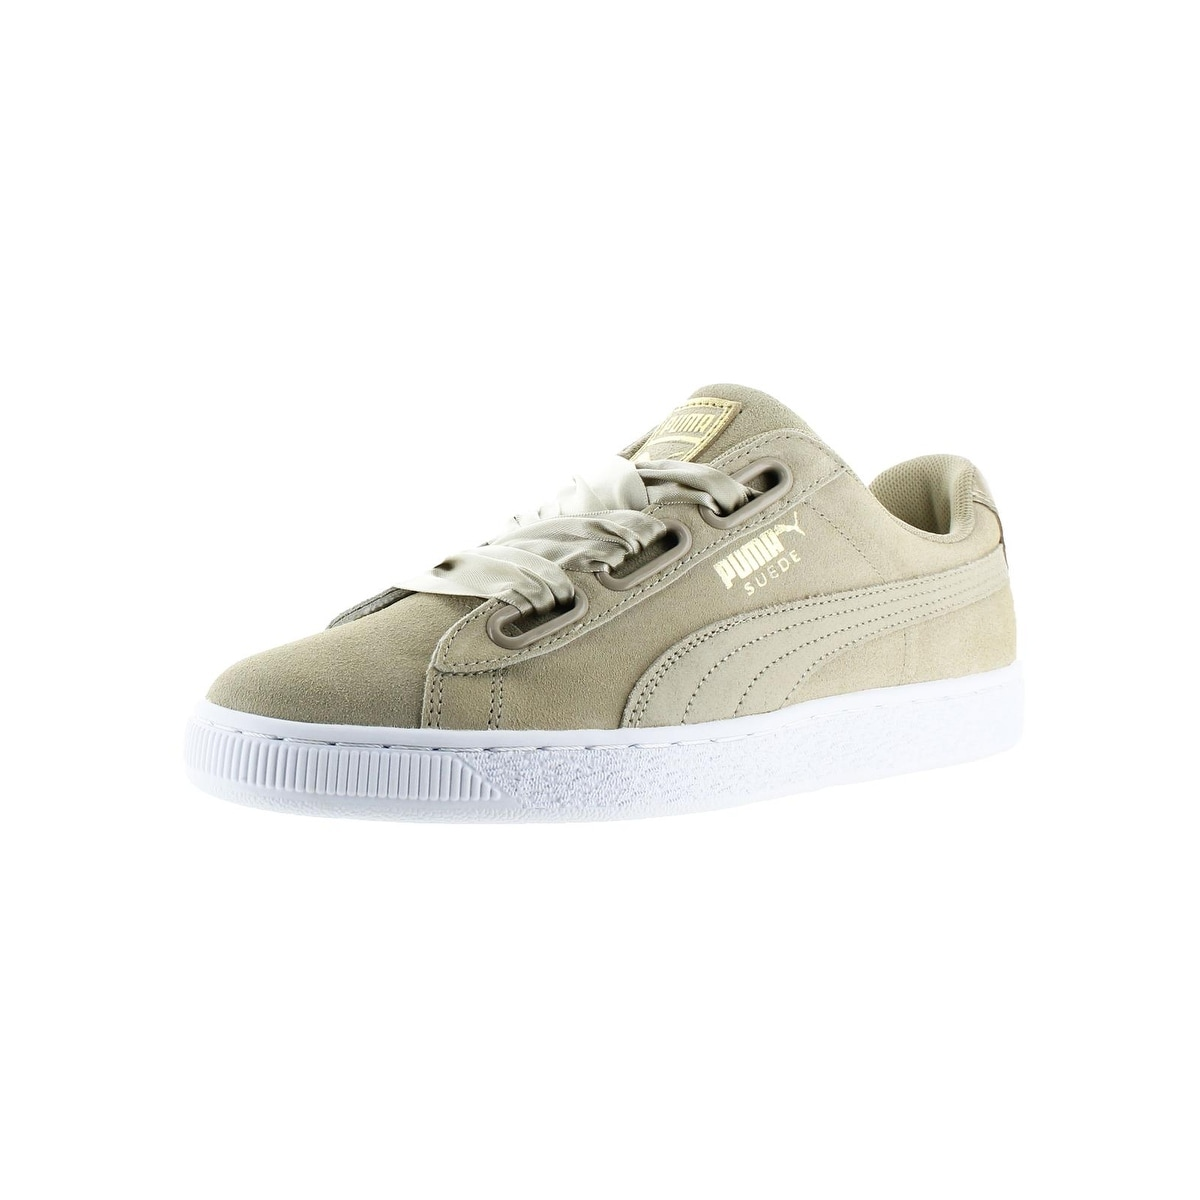 new style 7f138 df1ba Puma Womens Suede Heart Safari Fashion Sneakers Low Top Casual